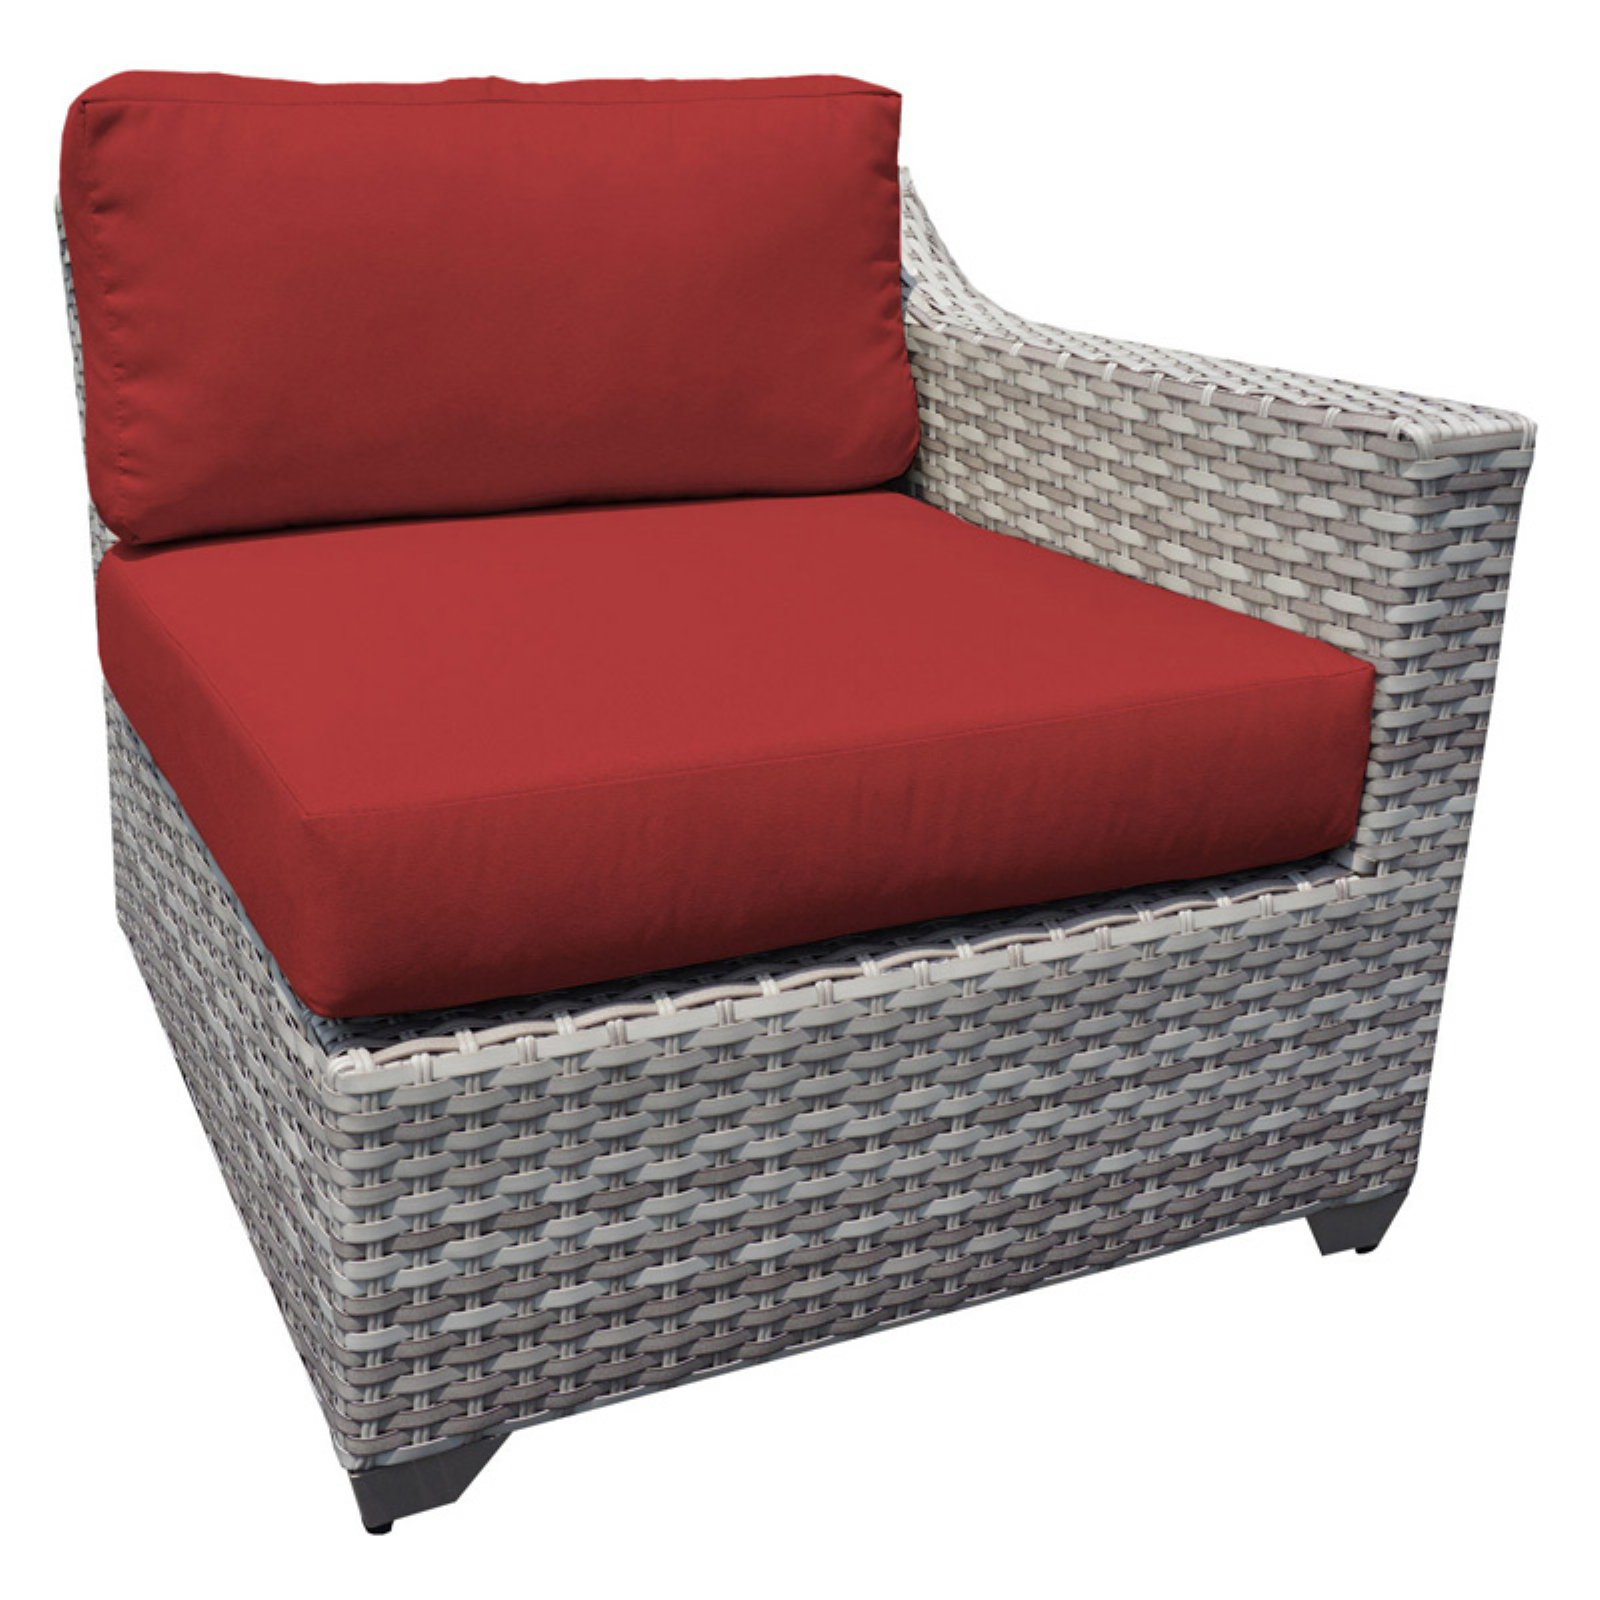 TK Classics Outdoor Wicker Left Arm Sofa Sectional Piece